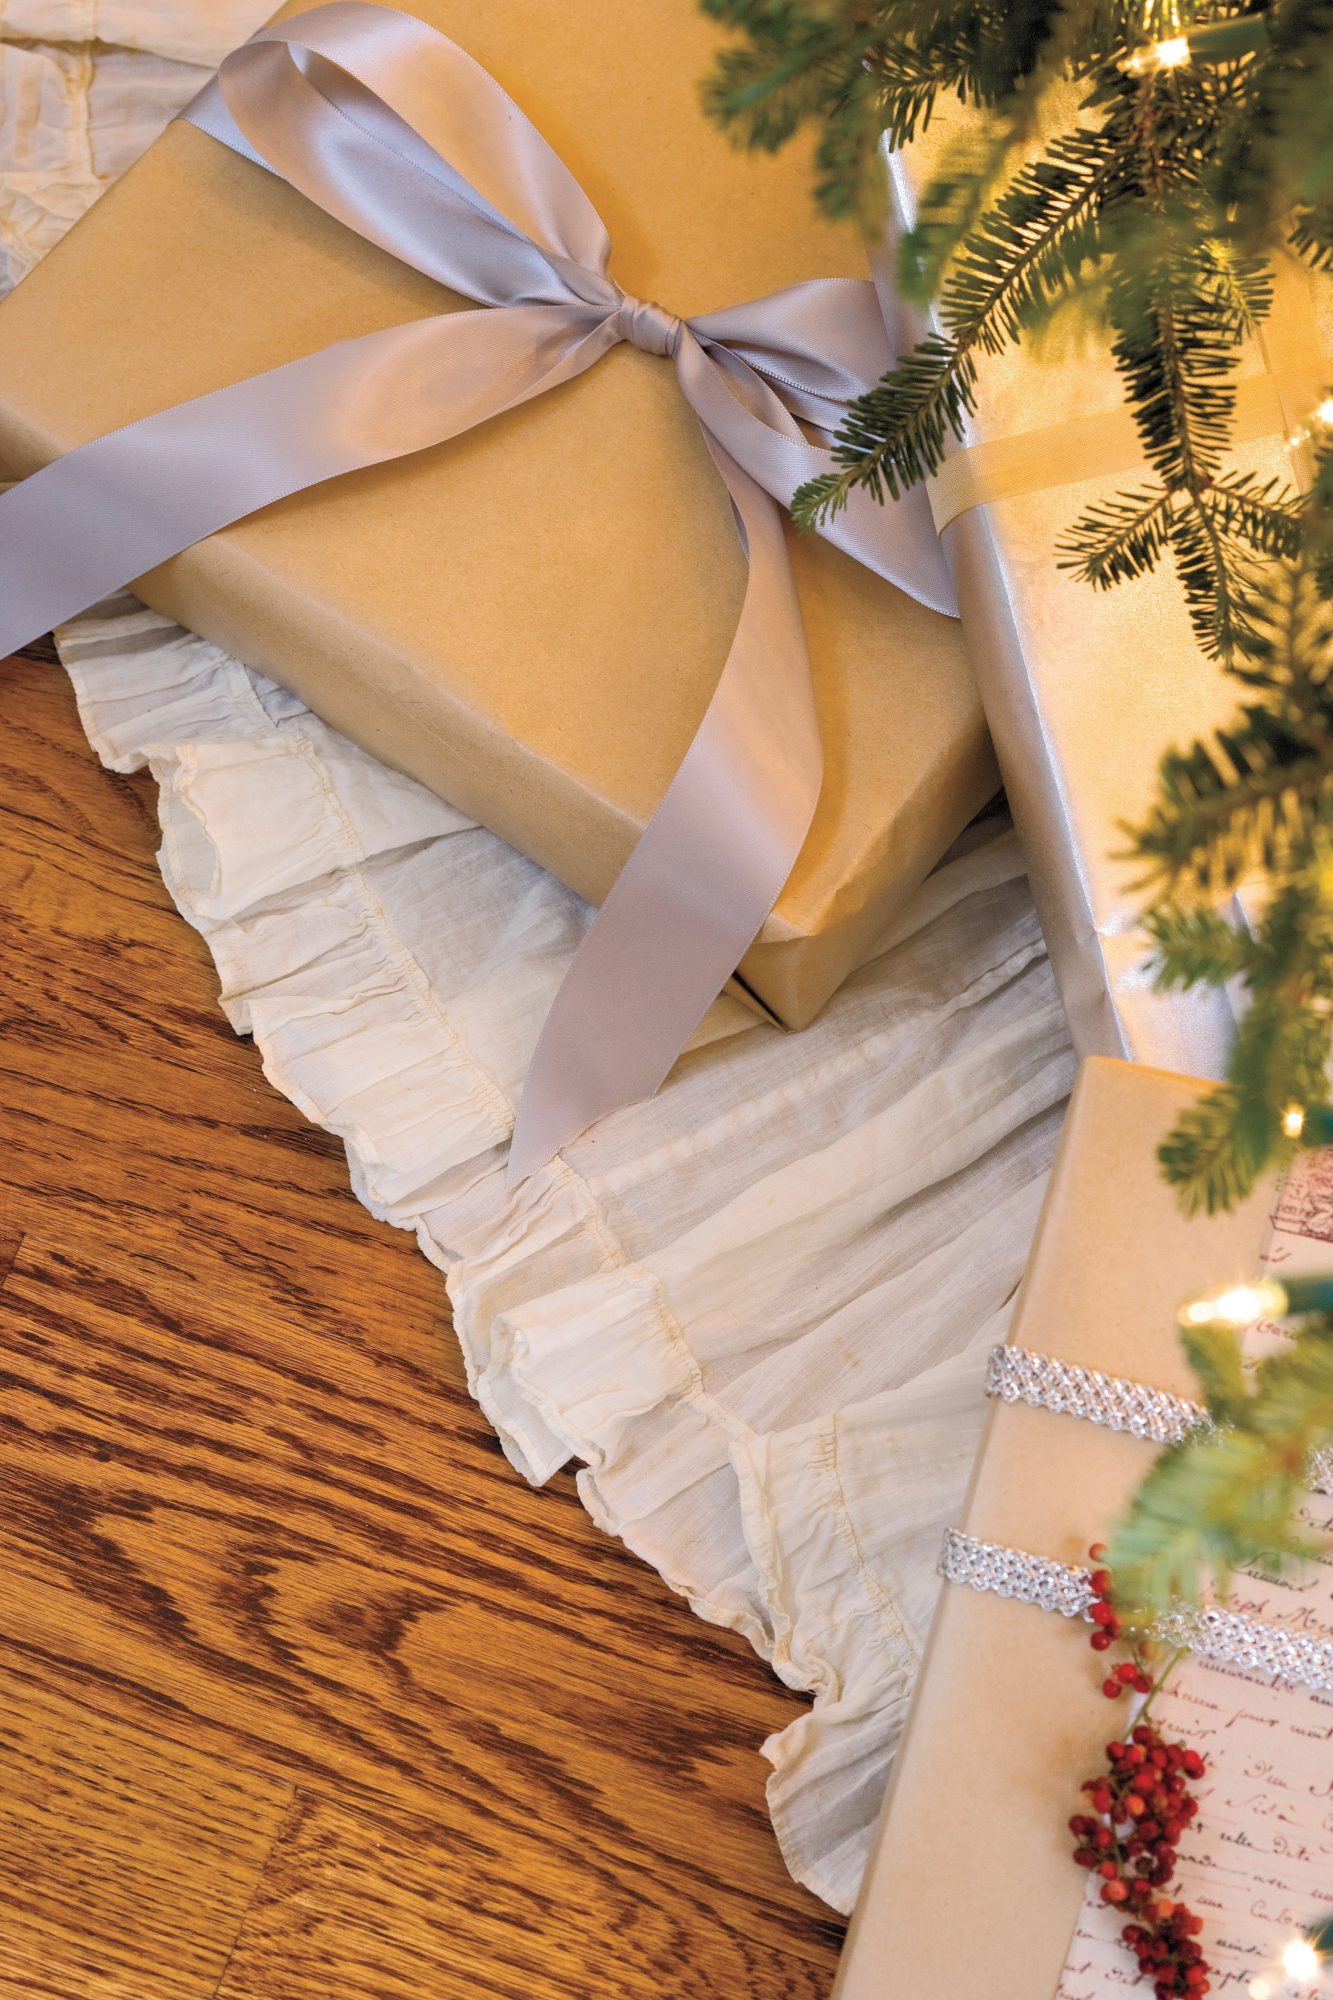 Vintage Christmas Decorations: Tree Skirts